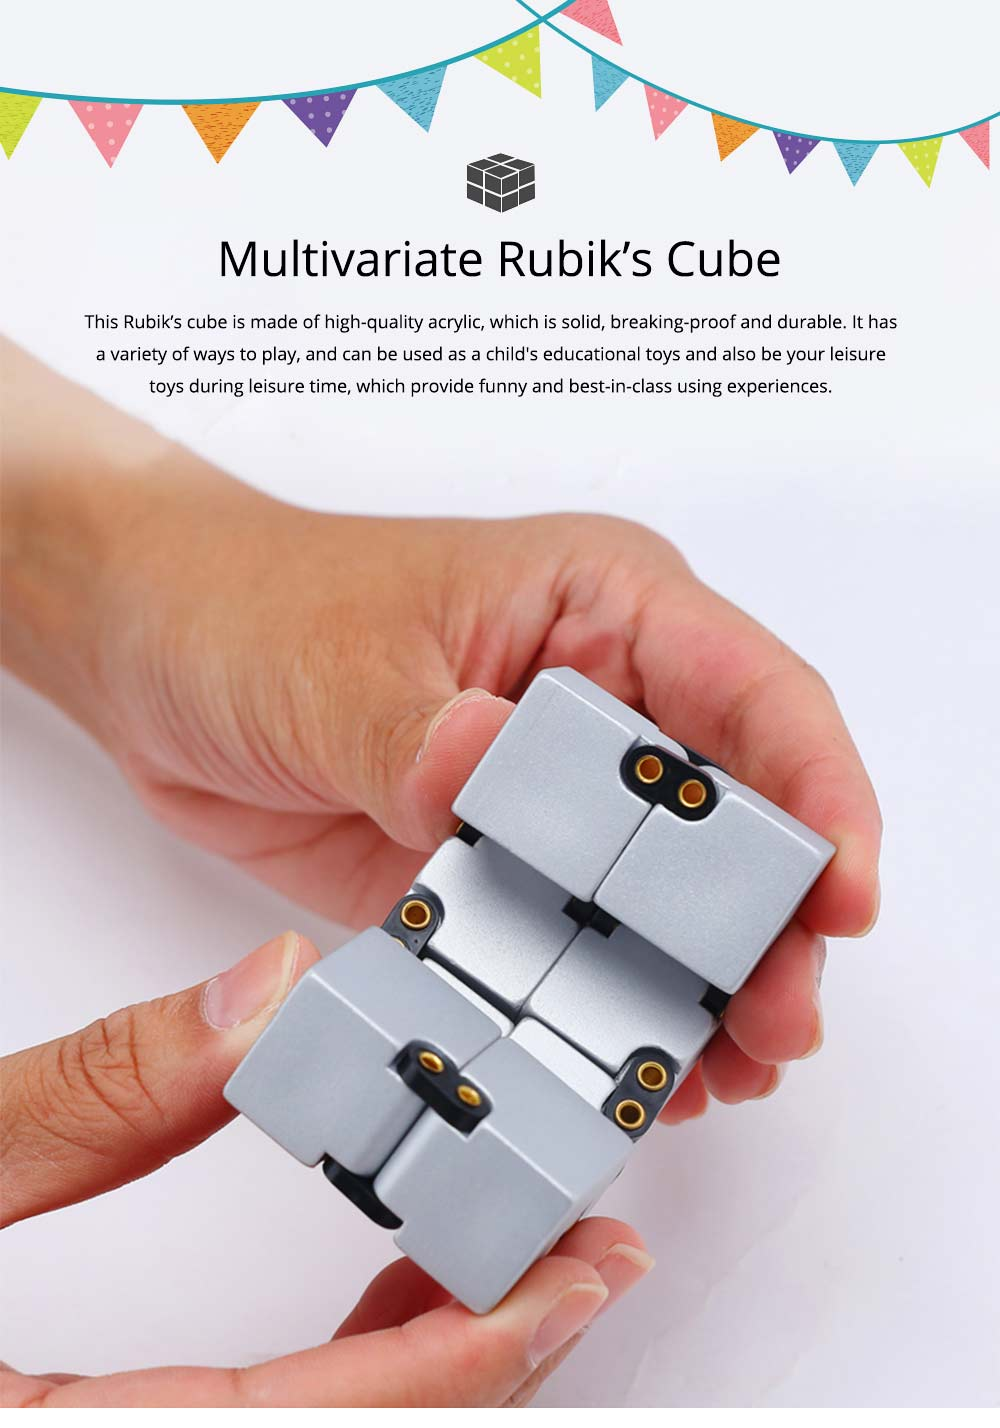 Creative Funny Multivariate Rubik's Cube Amusement Puzzle Toy, Interesting Magic Cube Gadgetry Present for Girls Boys 0